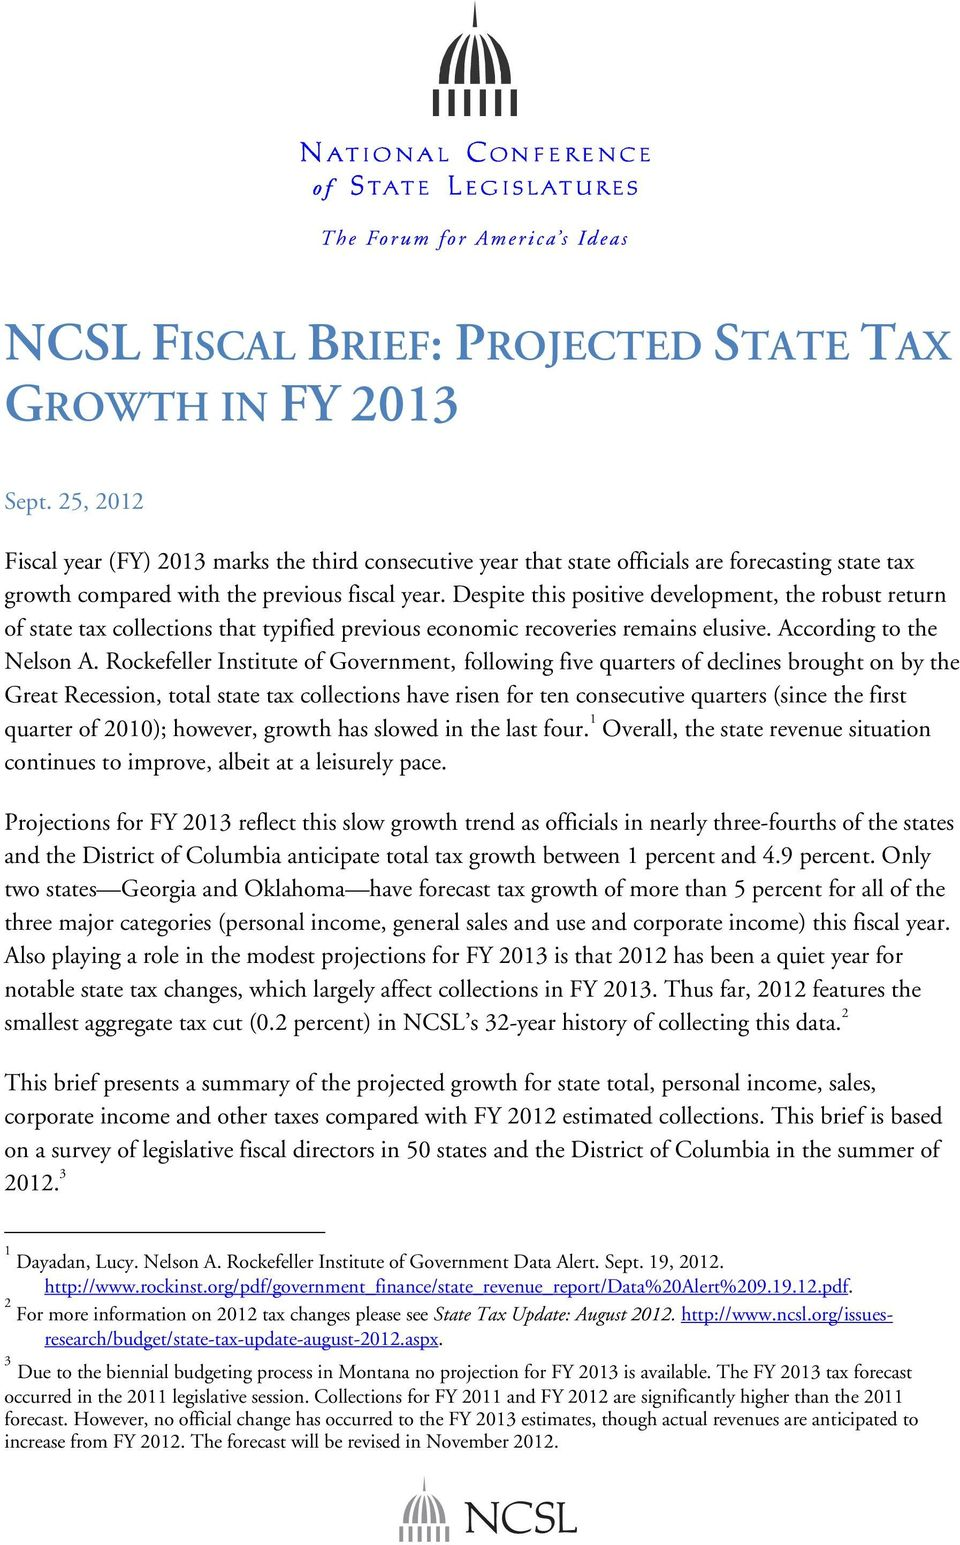 Despite this positive development, the robust return of state tax collections that typified previous economic recoveries remains elusive. According to the Nelson A.